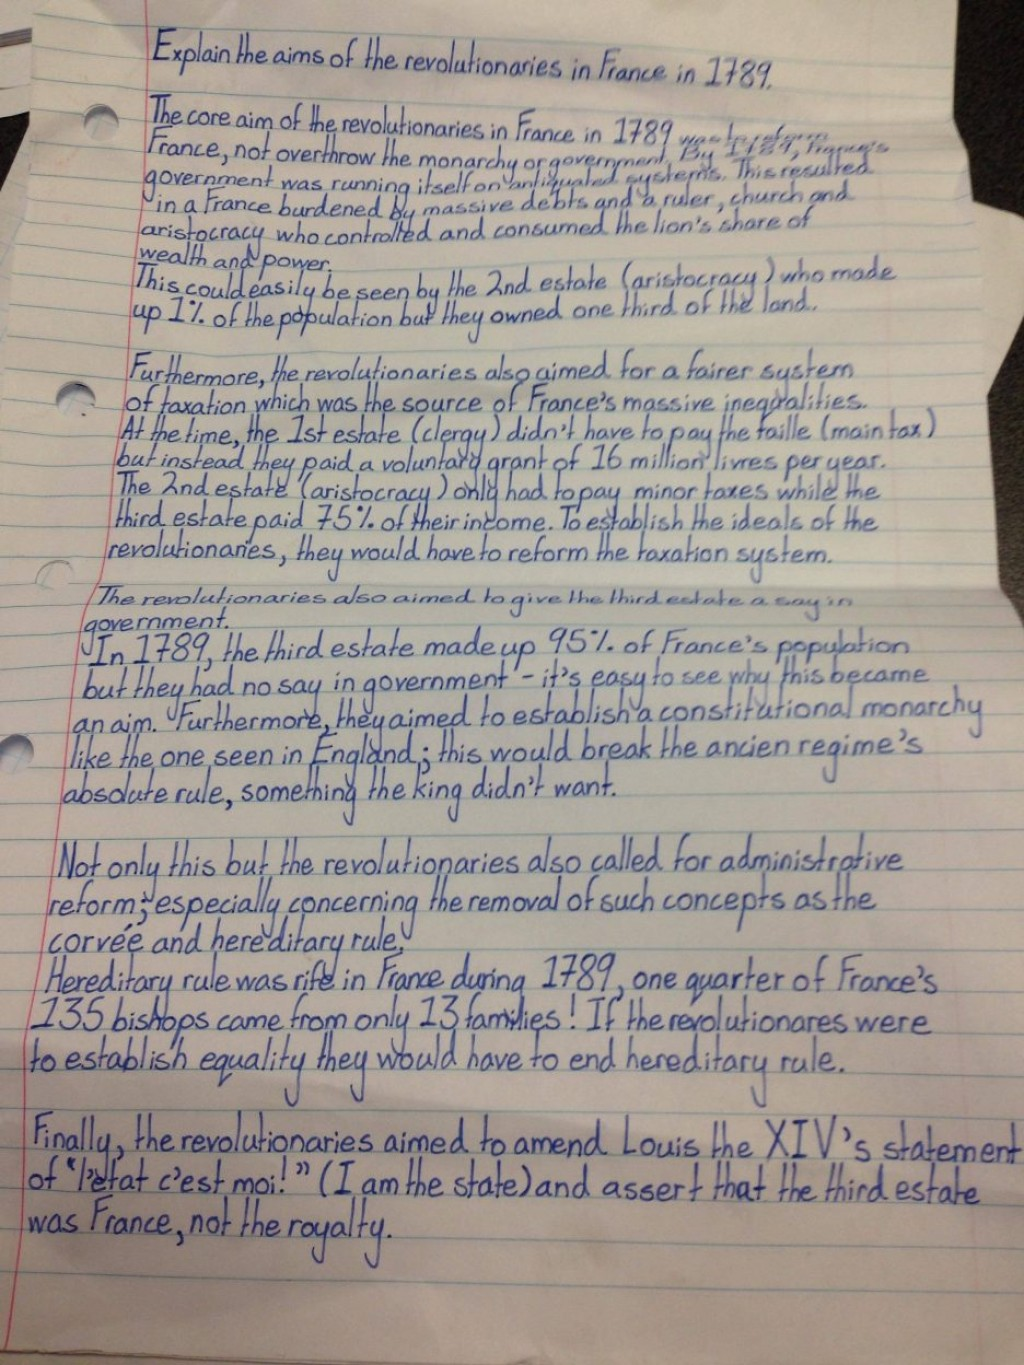 016 Essaysrench Revolution Uqdxjil Example On Questions The Essay Laidoundation Of Democracy Causes And Effects Regents Paris Provinces Conclusion Enlightenment Napoleon 936x1248 Phenomenal French Outline Titles Large